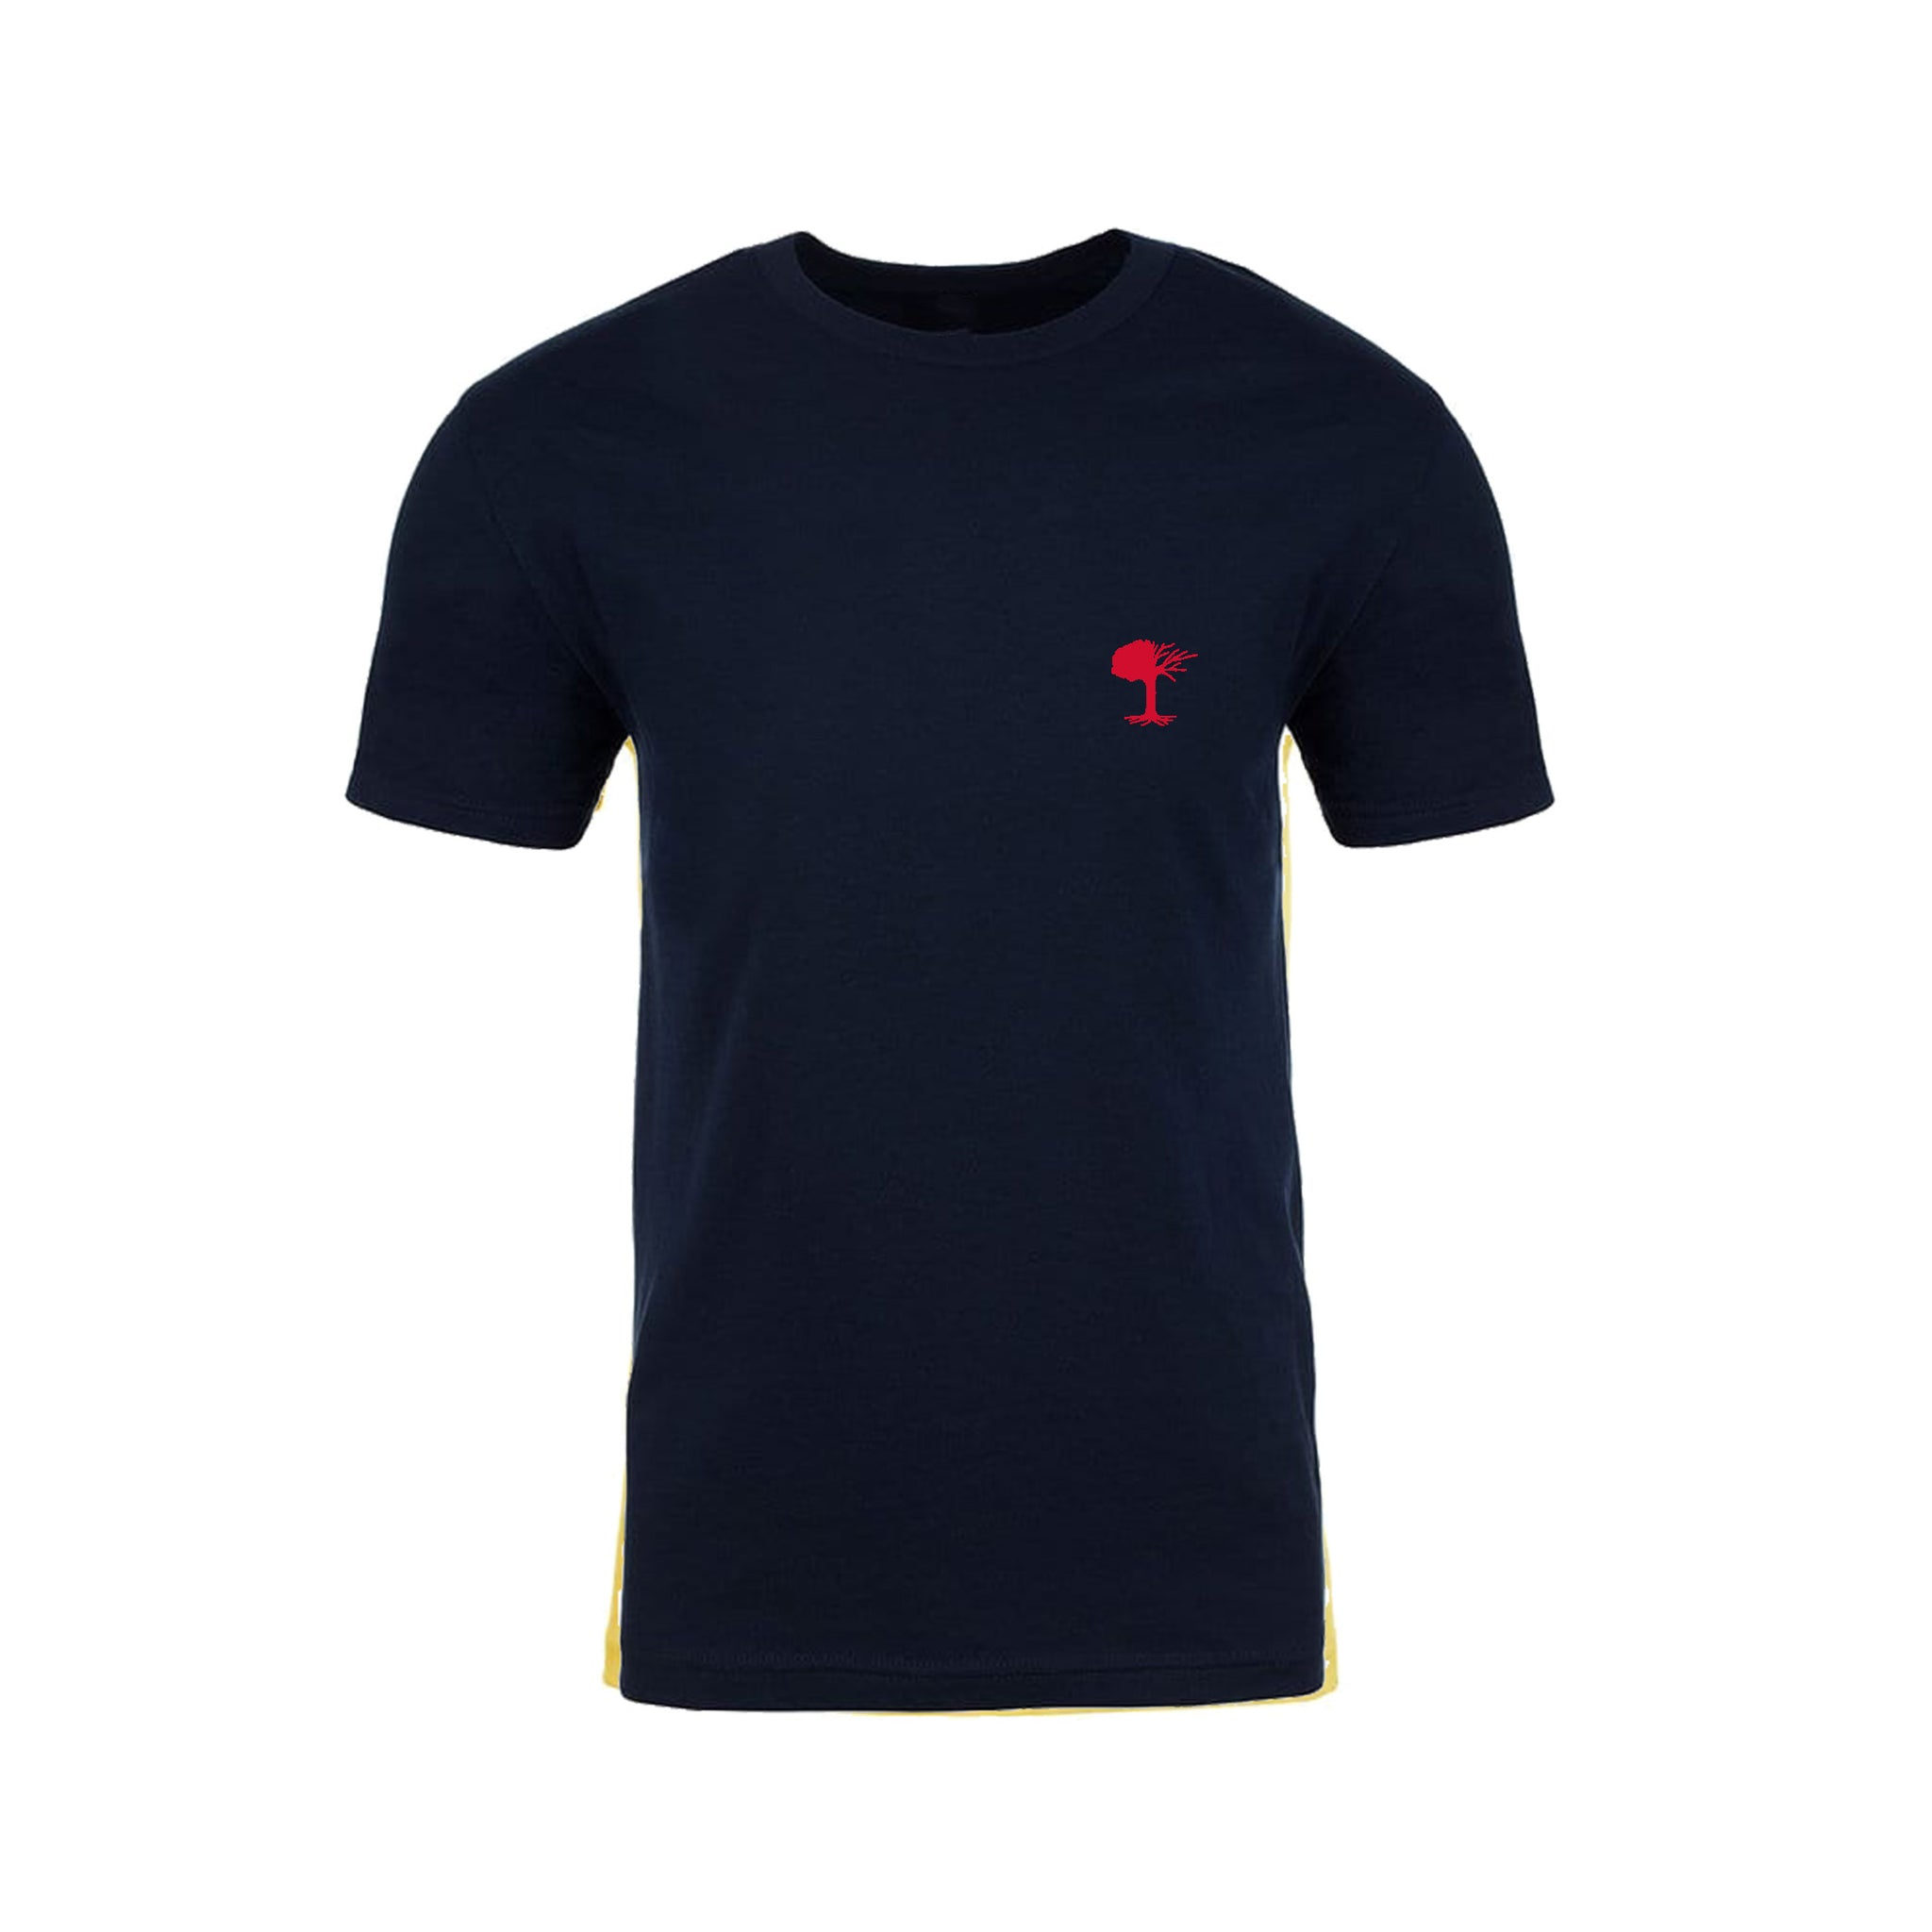 STEM Men's Embroidered T-Shirt - STEM Clothing Group